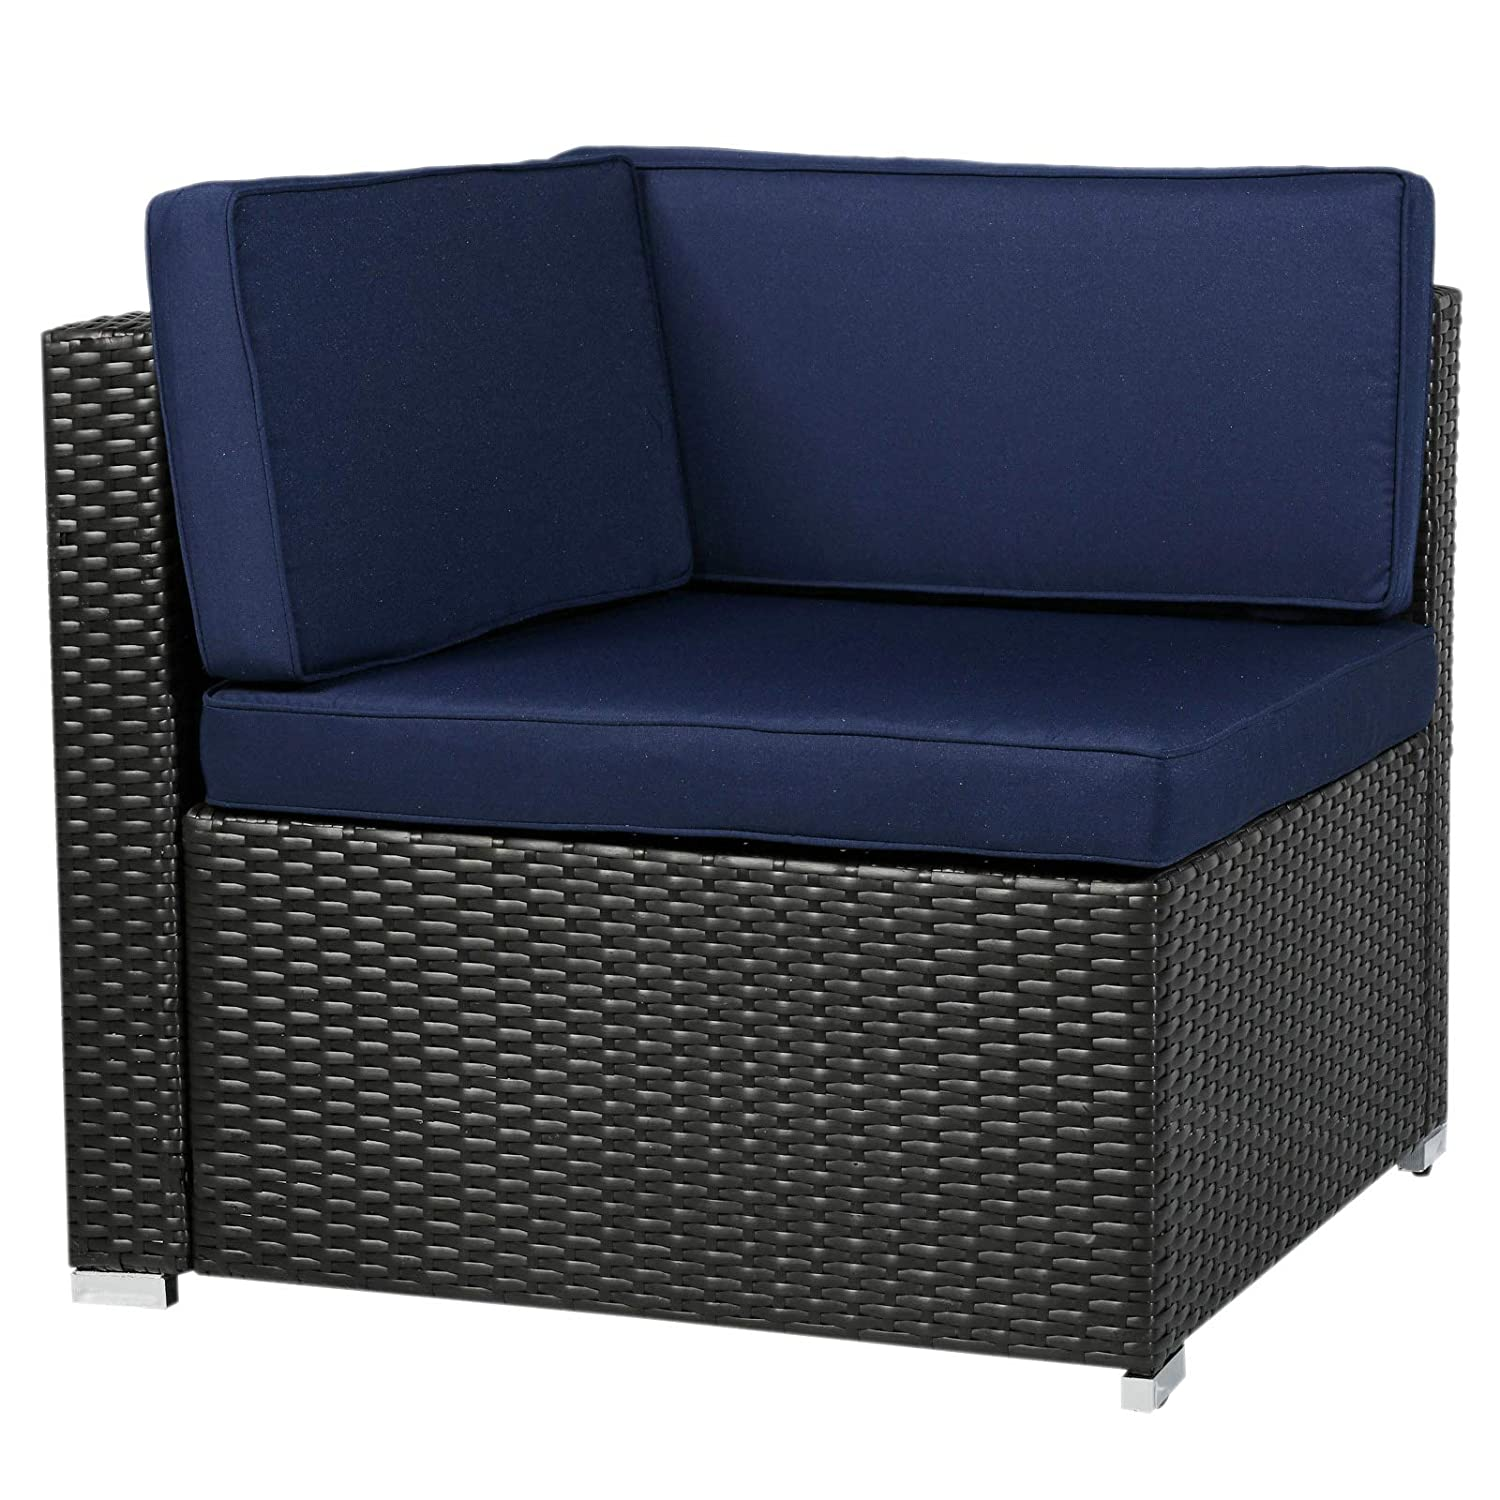 Amazon com outsunny 7 piece wicker rattan sofa sectional outdoor patio furniture set blue kitchen dining